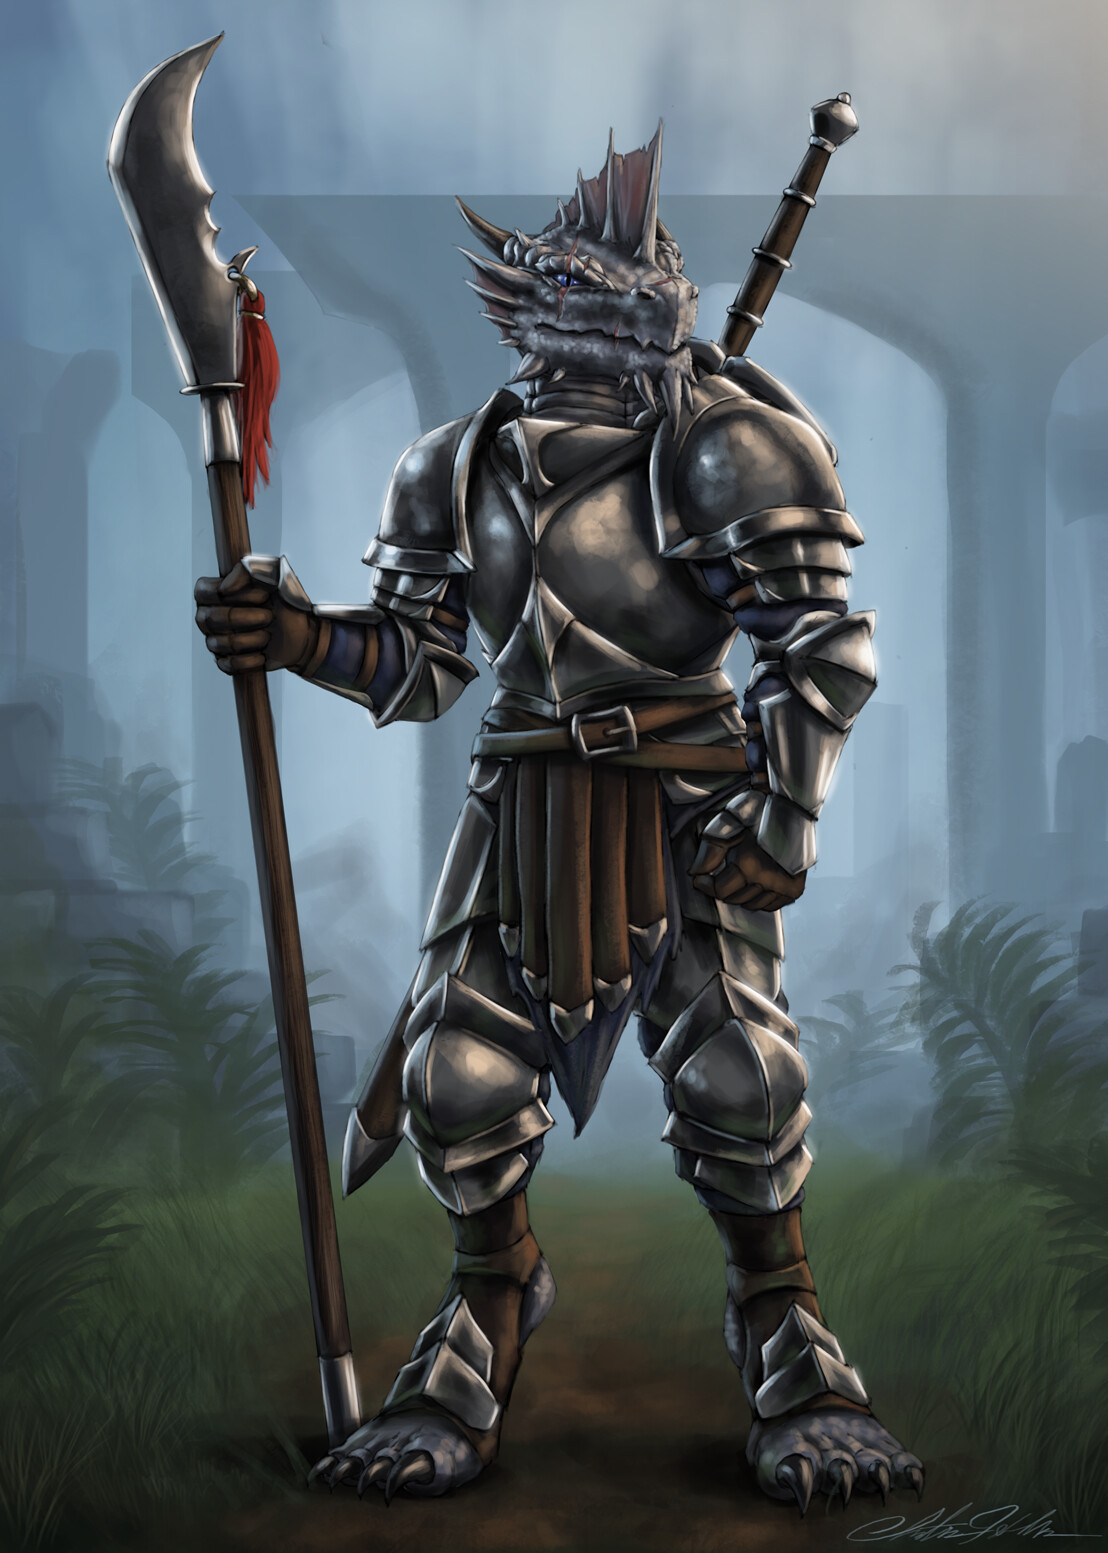 Christian hadfield marcrath cluuldrur the silver dragonborn fighter by christian hadfield lowrez